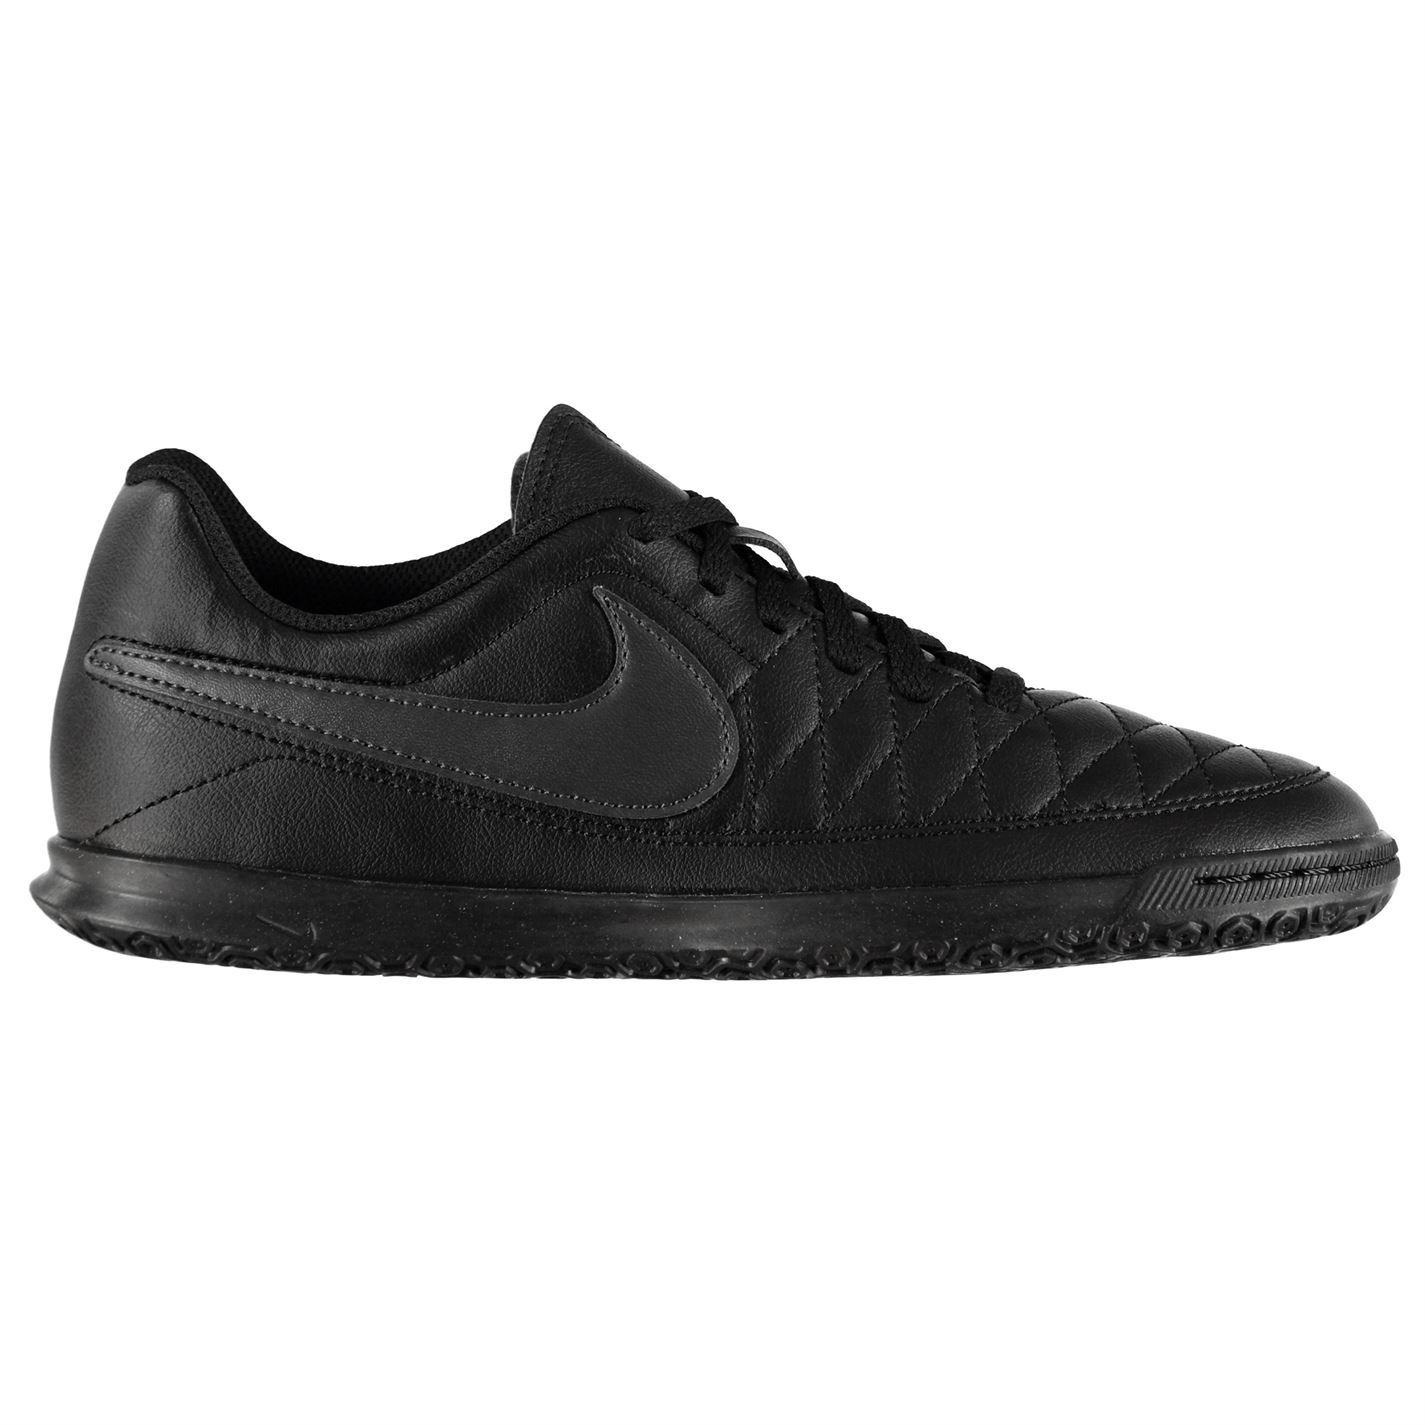 Nike-majestry-Indoor-Football-Baskets-Pour-Homme-Football-Futsal-Chaussures-Baskets-Bottes miniature 13